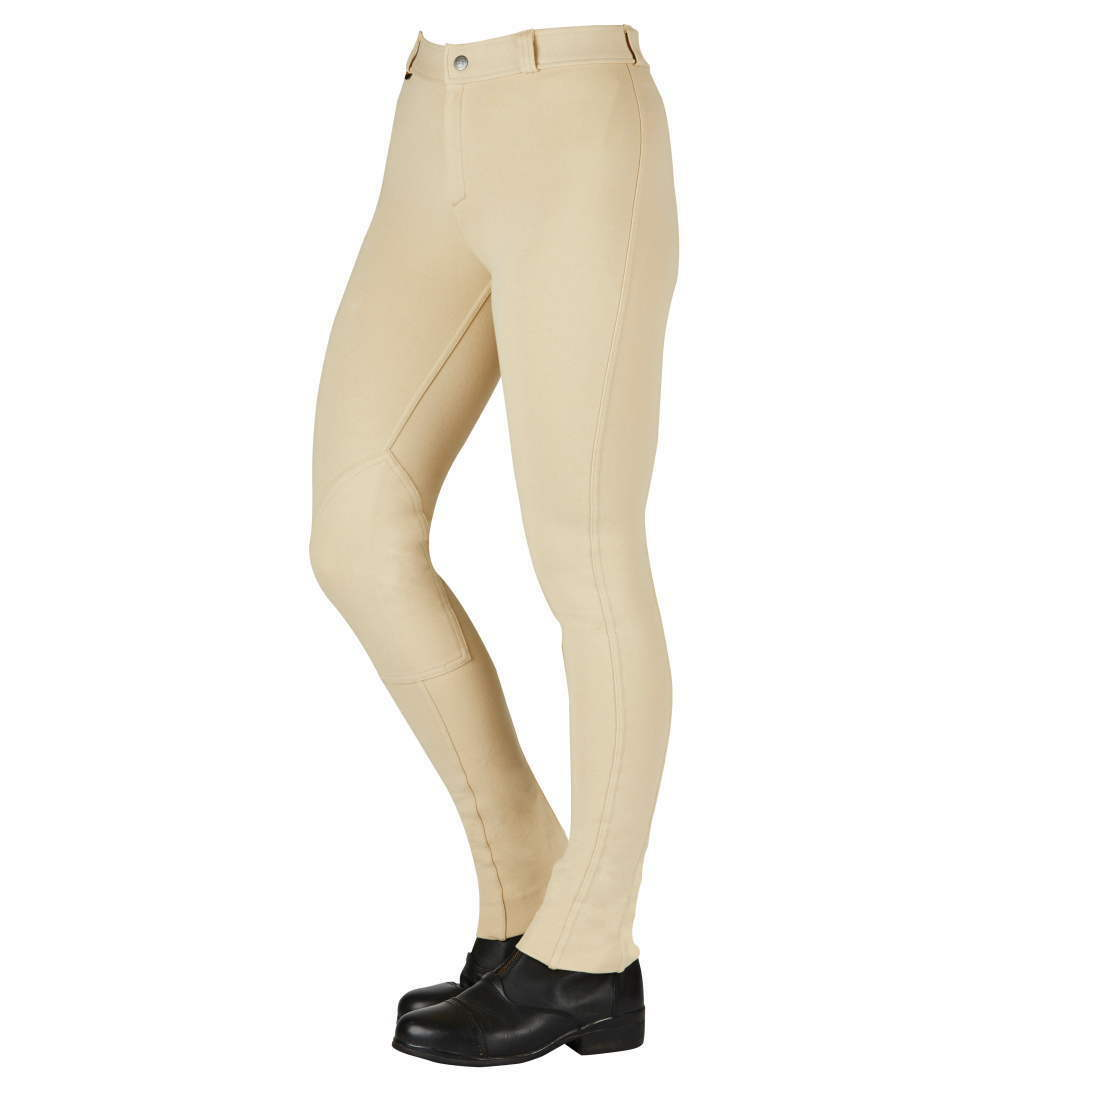 Pikeur Lugana Ladies Breeches - Prestige-Micro 2000+ - Fabric 79  Size 38  no.1 online